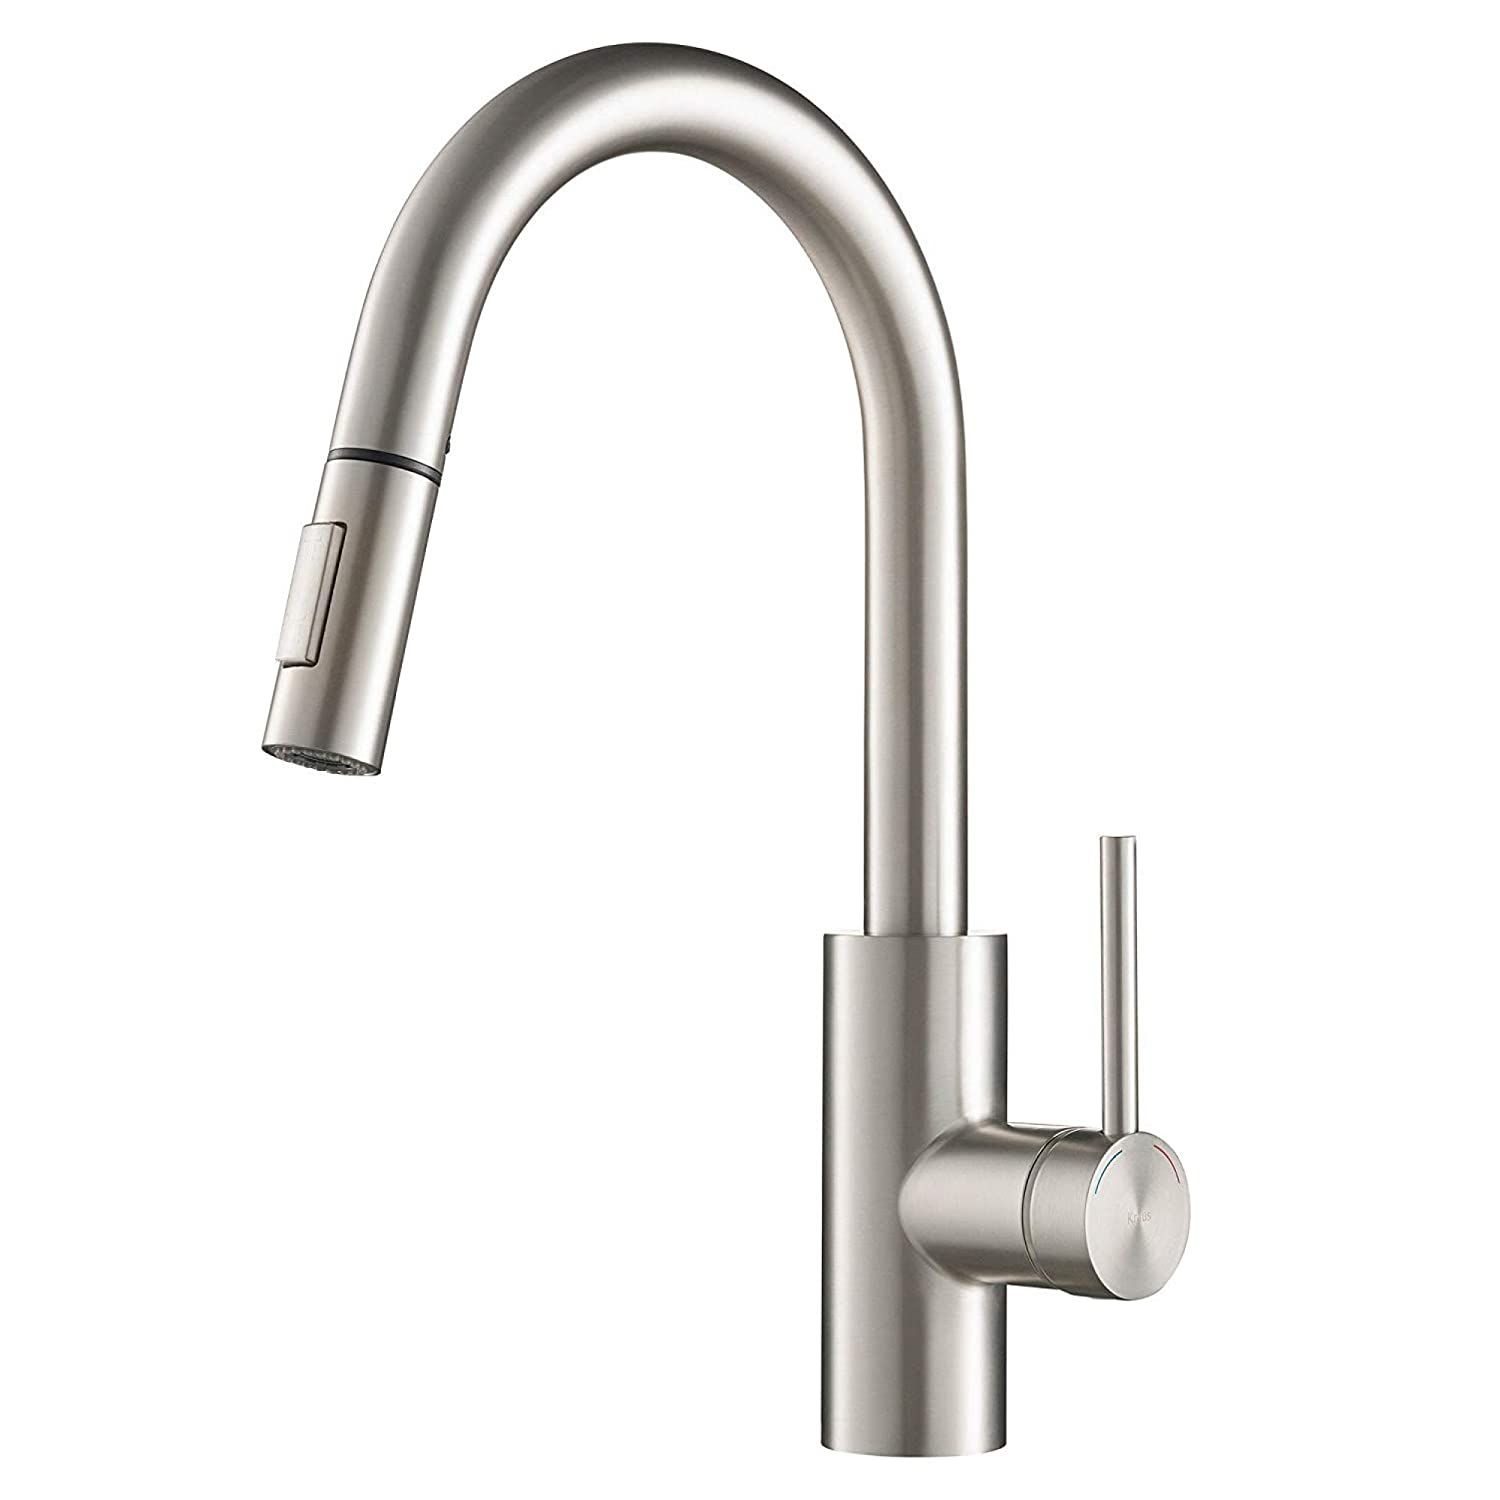 KRAUS KPF-2620SFS Oletto Kitchen Faucet, 15.75 inch, Spot Free Stainless Steel